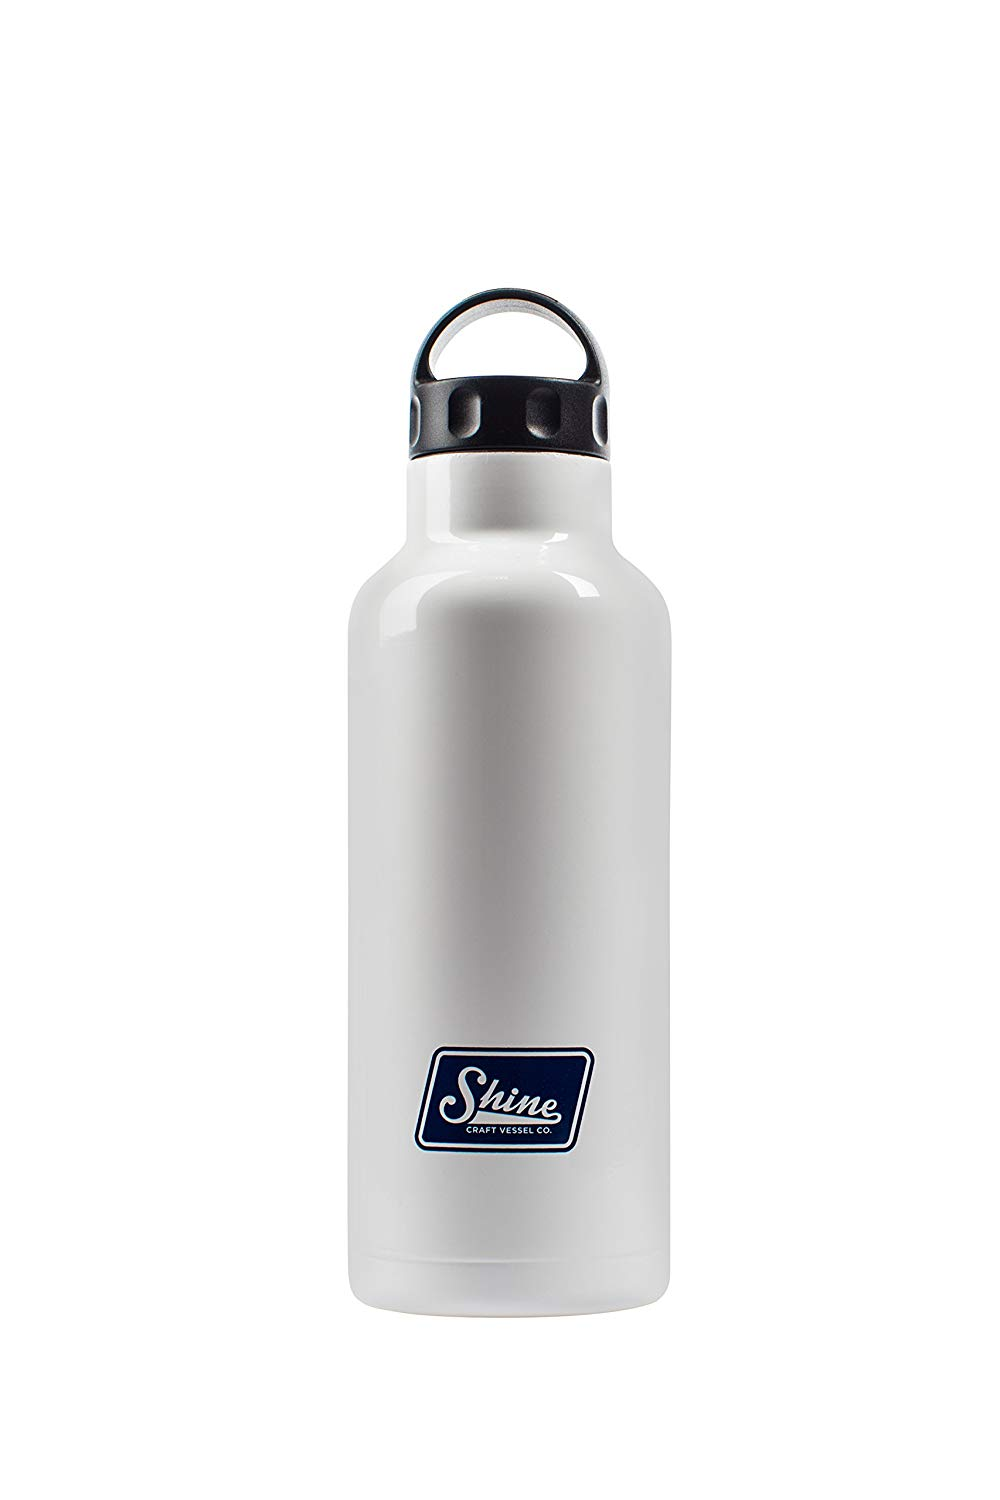 Water Bottle Stainless Steel Vacuum Insulated Wide Mouth by Shine Craft Vessels | Thermos Flask Keeps Water Stay Cold for 24 hours, Hot for 10 hours BPA Free ( Bright White ) - Vessel 750ML